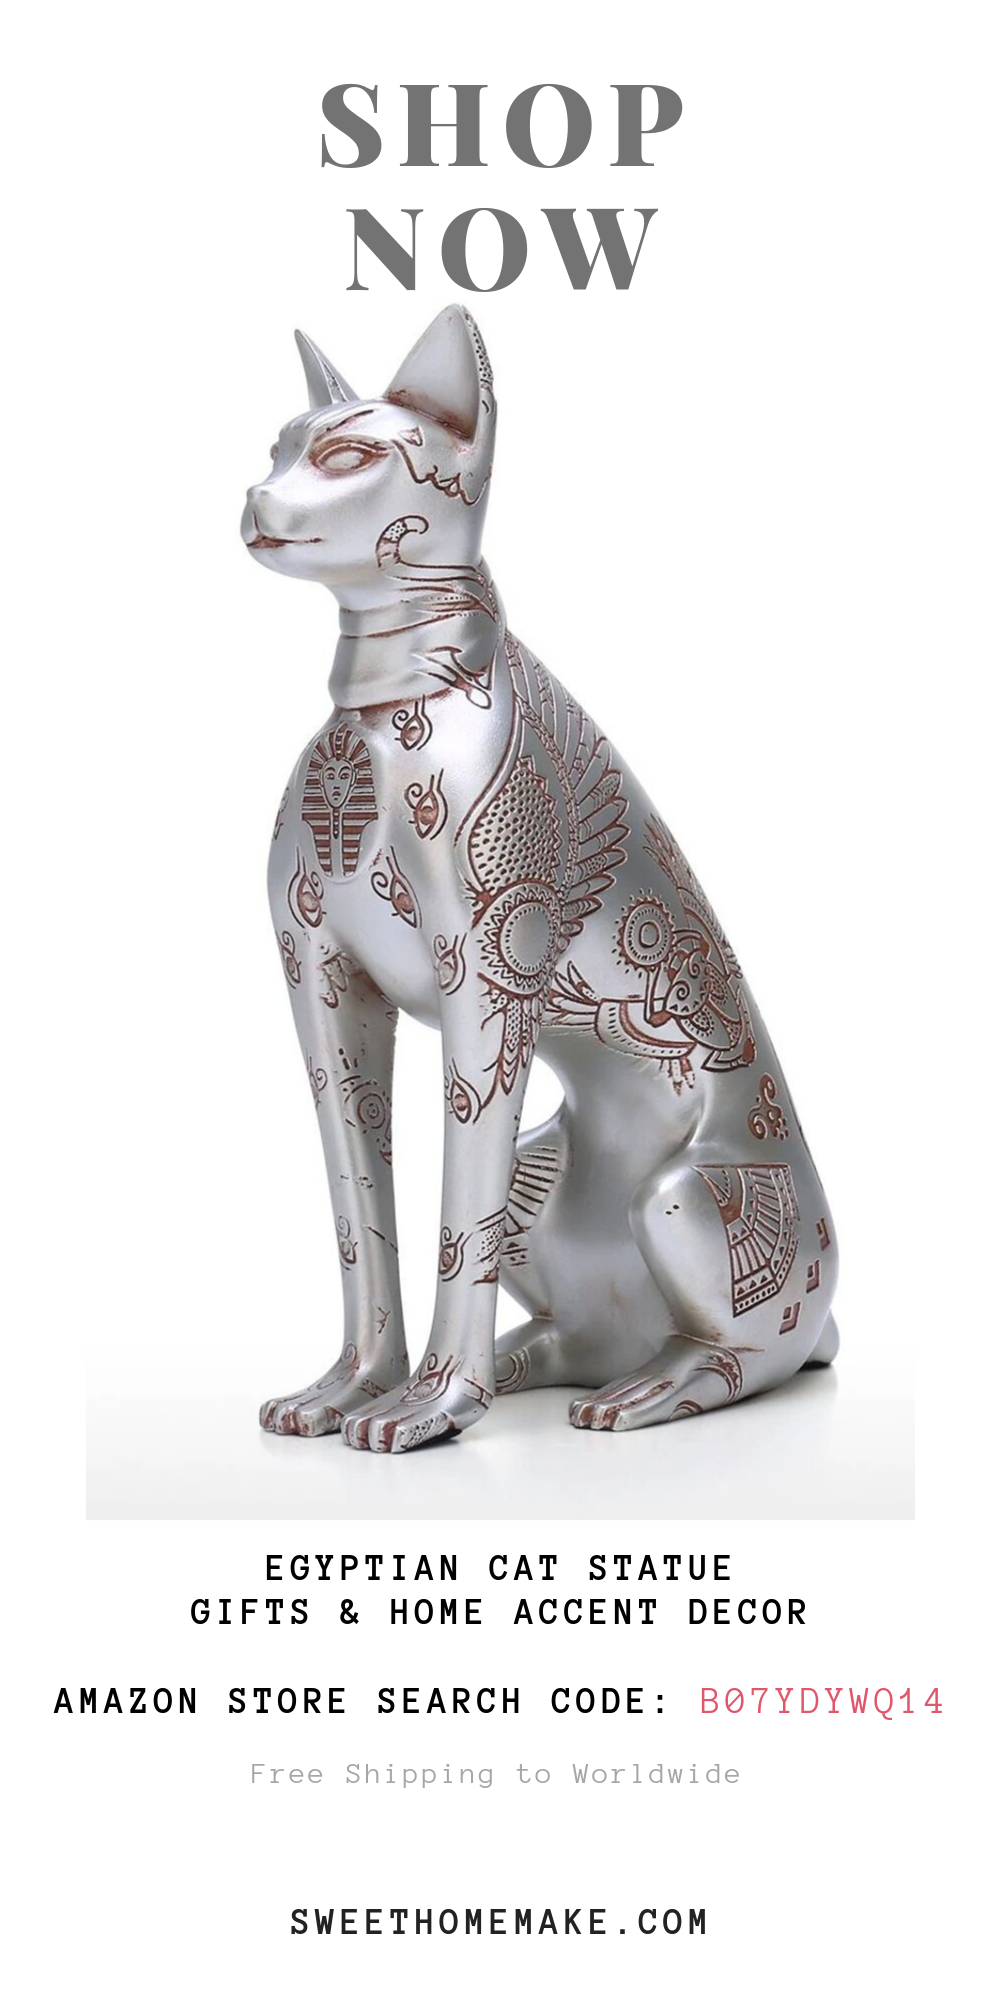 Egyptian Cat Statue For Cat Ornaments and Accent Decor